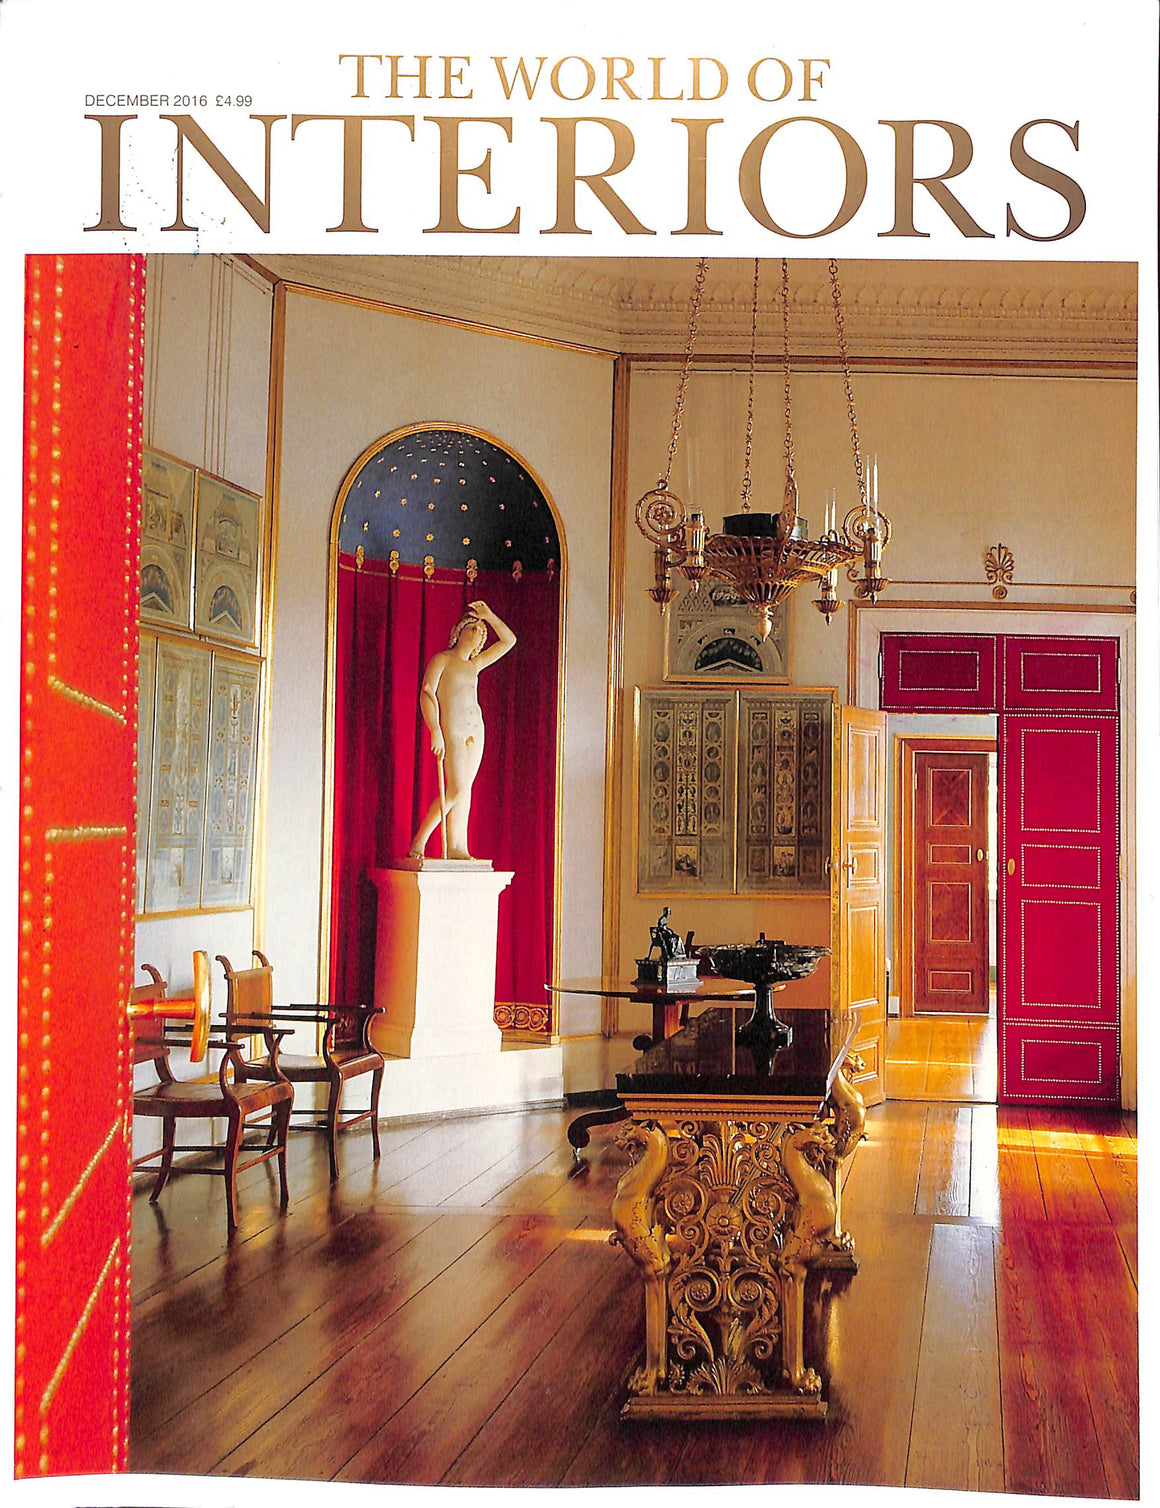 The World of Interiors December 2016 (Sold!)